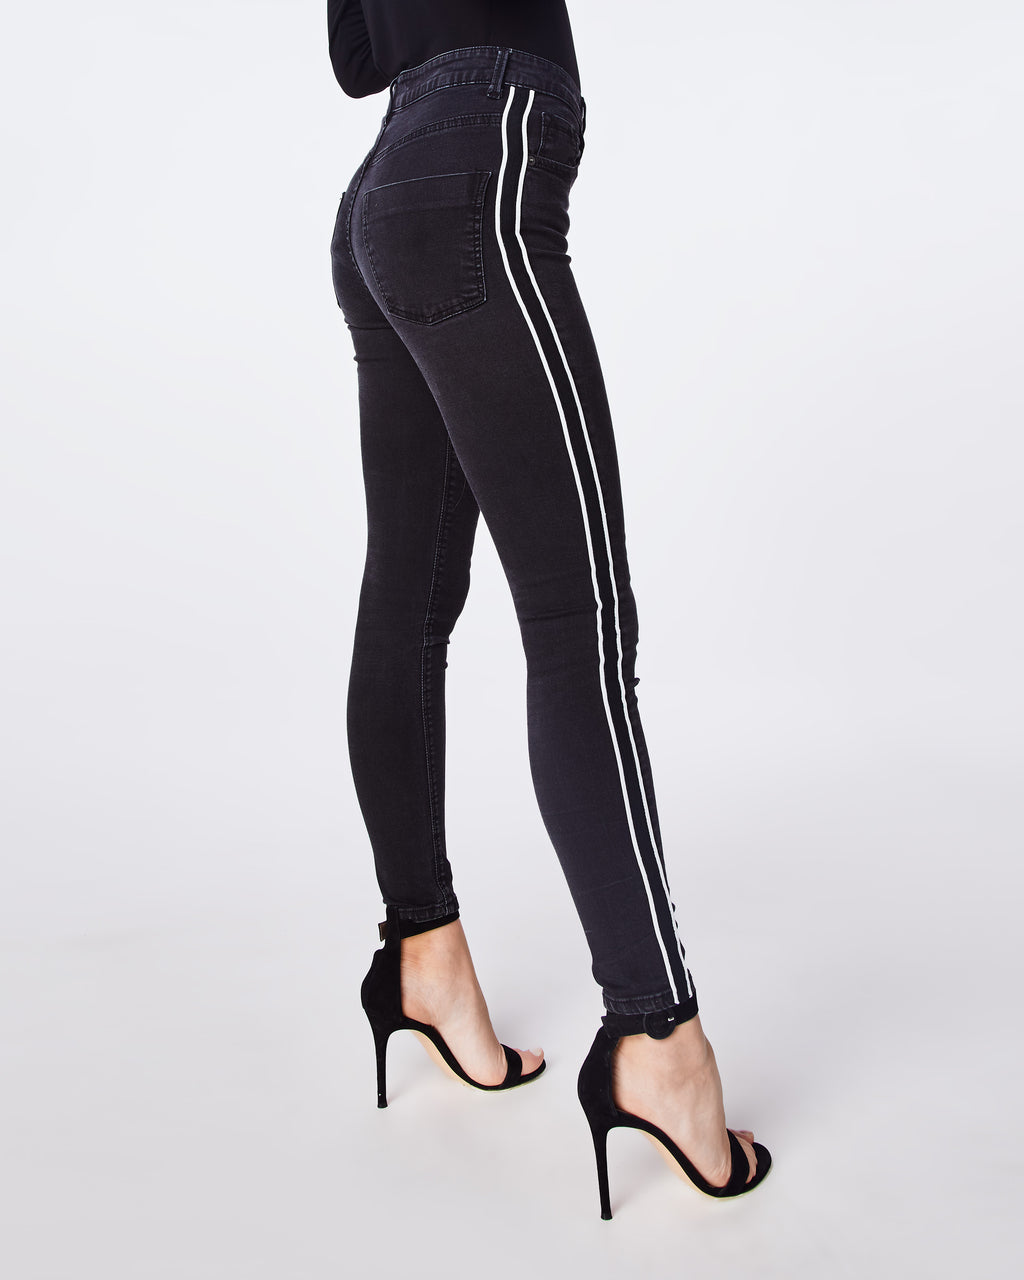 AS10180 - HIGH RISE SKINNY JEANS - bottoms - denim - CUT WITH A HIGH WAIST, THIS SKINNY JEAN PAIRS WELL WITH ANY FOOTWEAR. THE STRIPED DETAIL ADDS A NICE DETAIL.